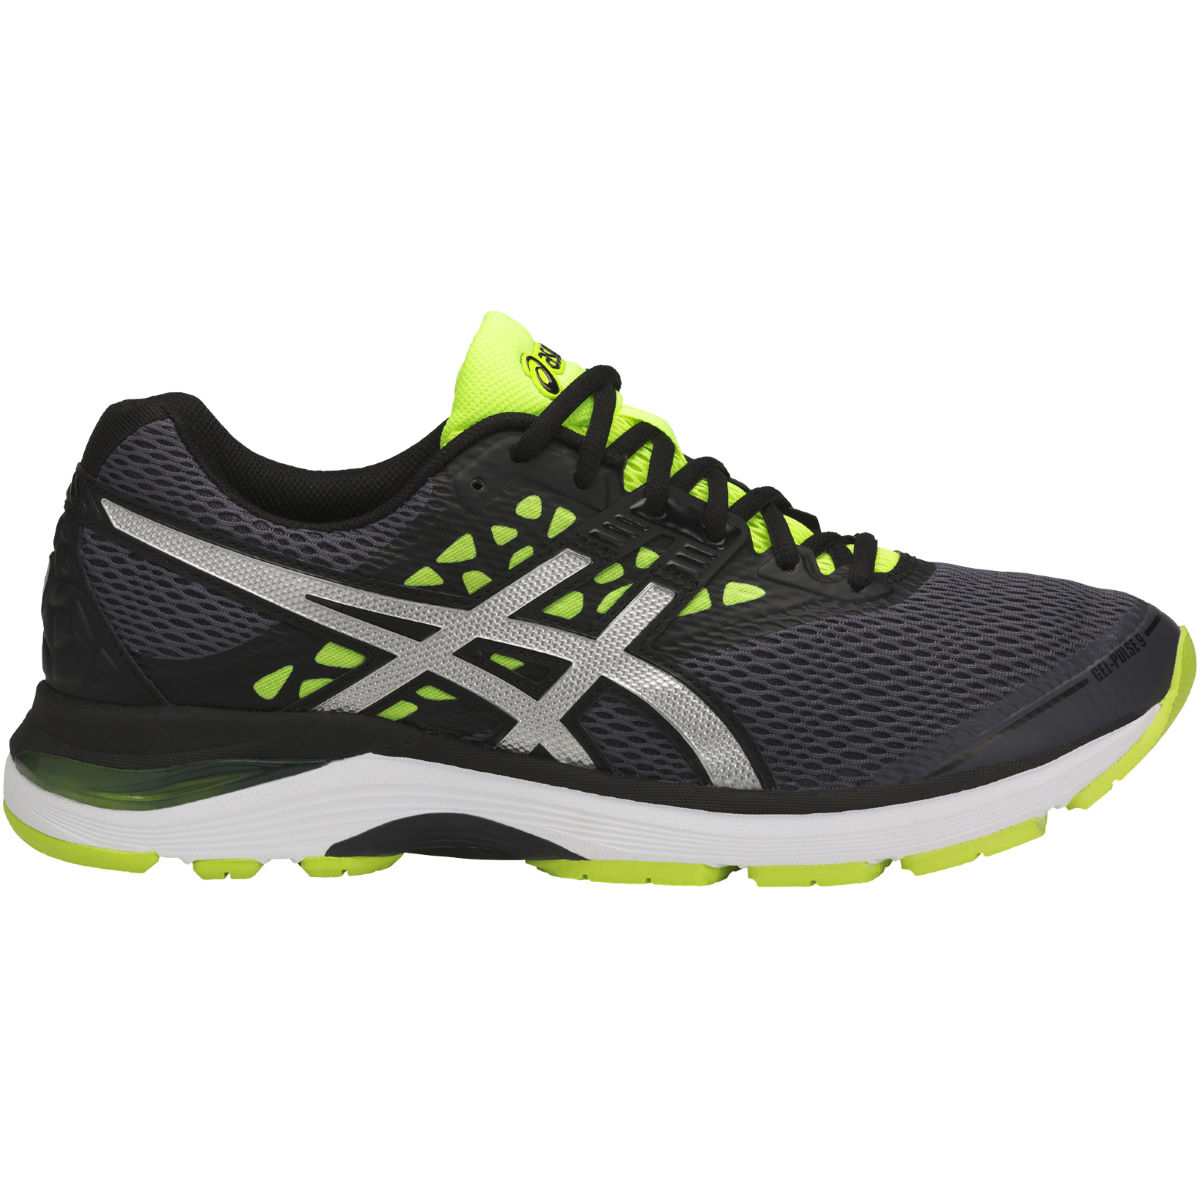 Chaussures Asics Gel-Pulse 9 - UK 11 CARBON/SILVER/SAFETY